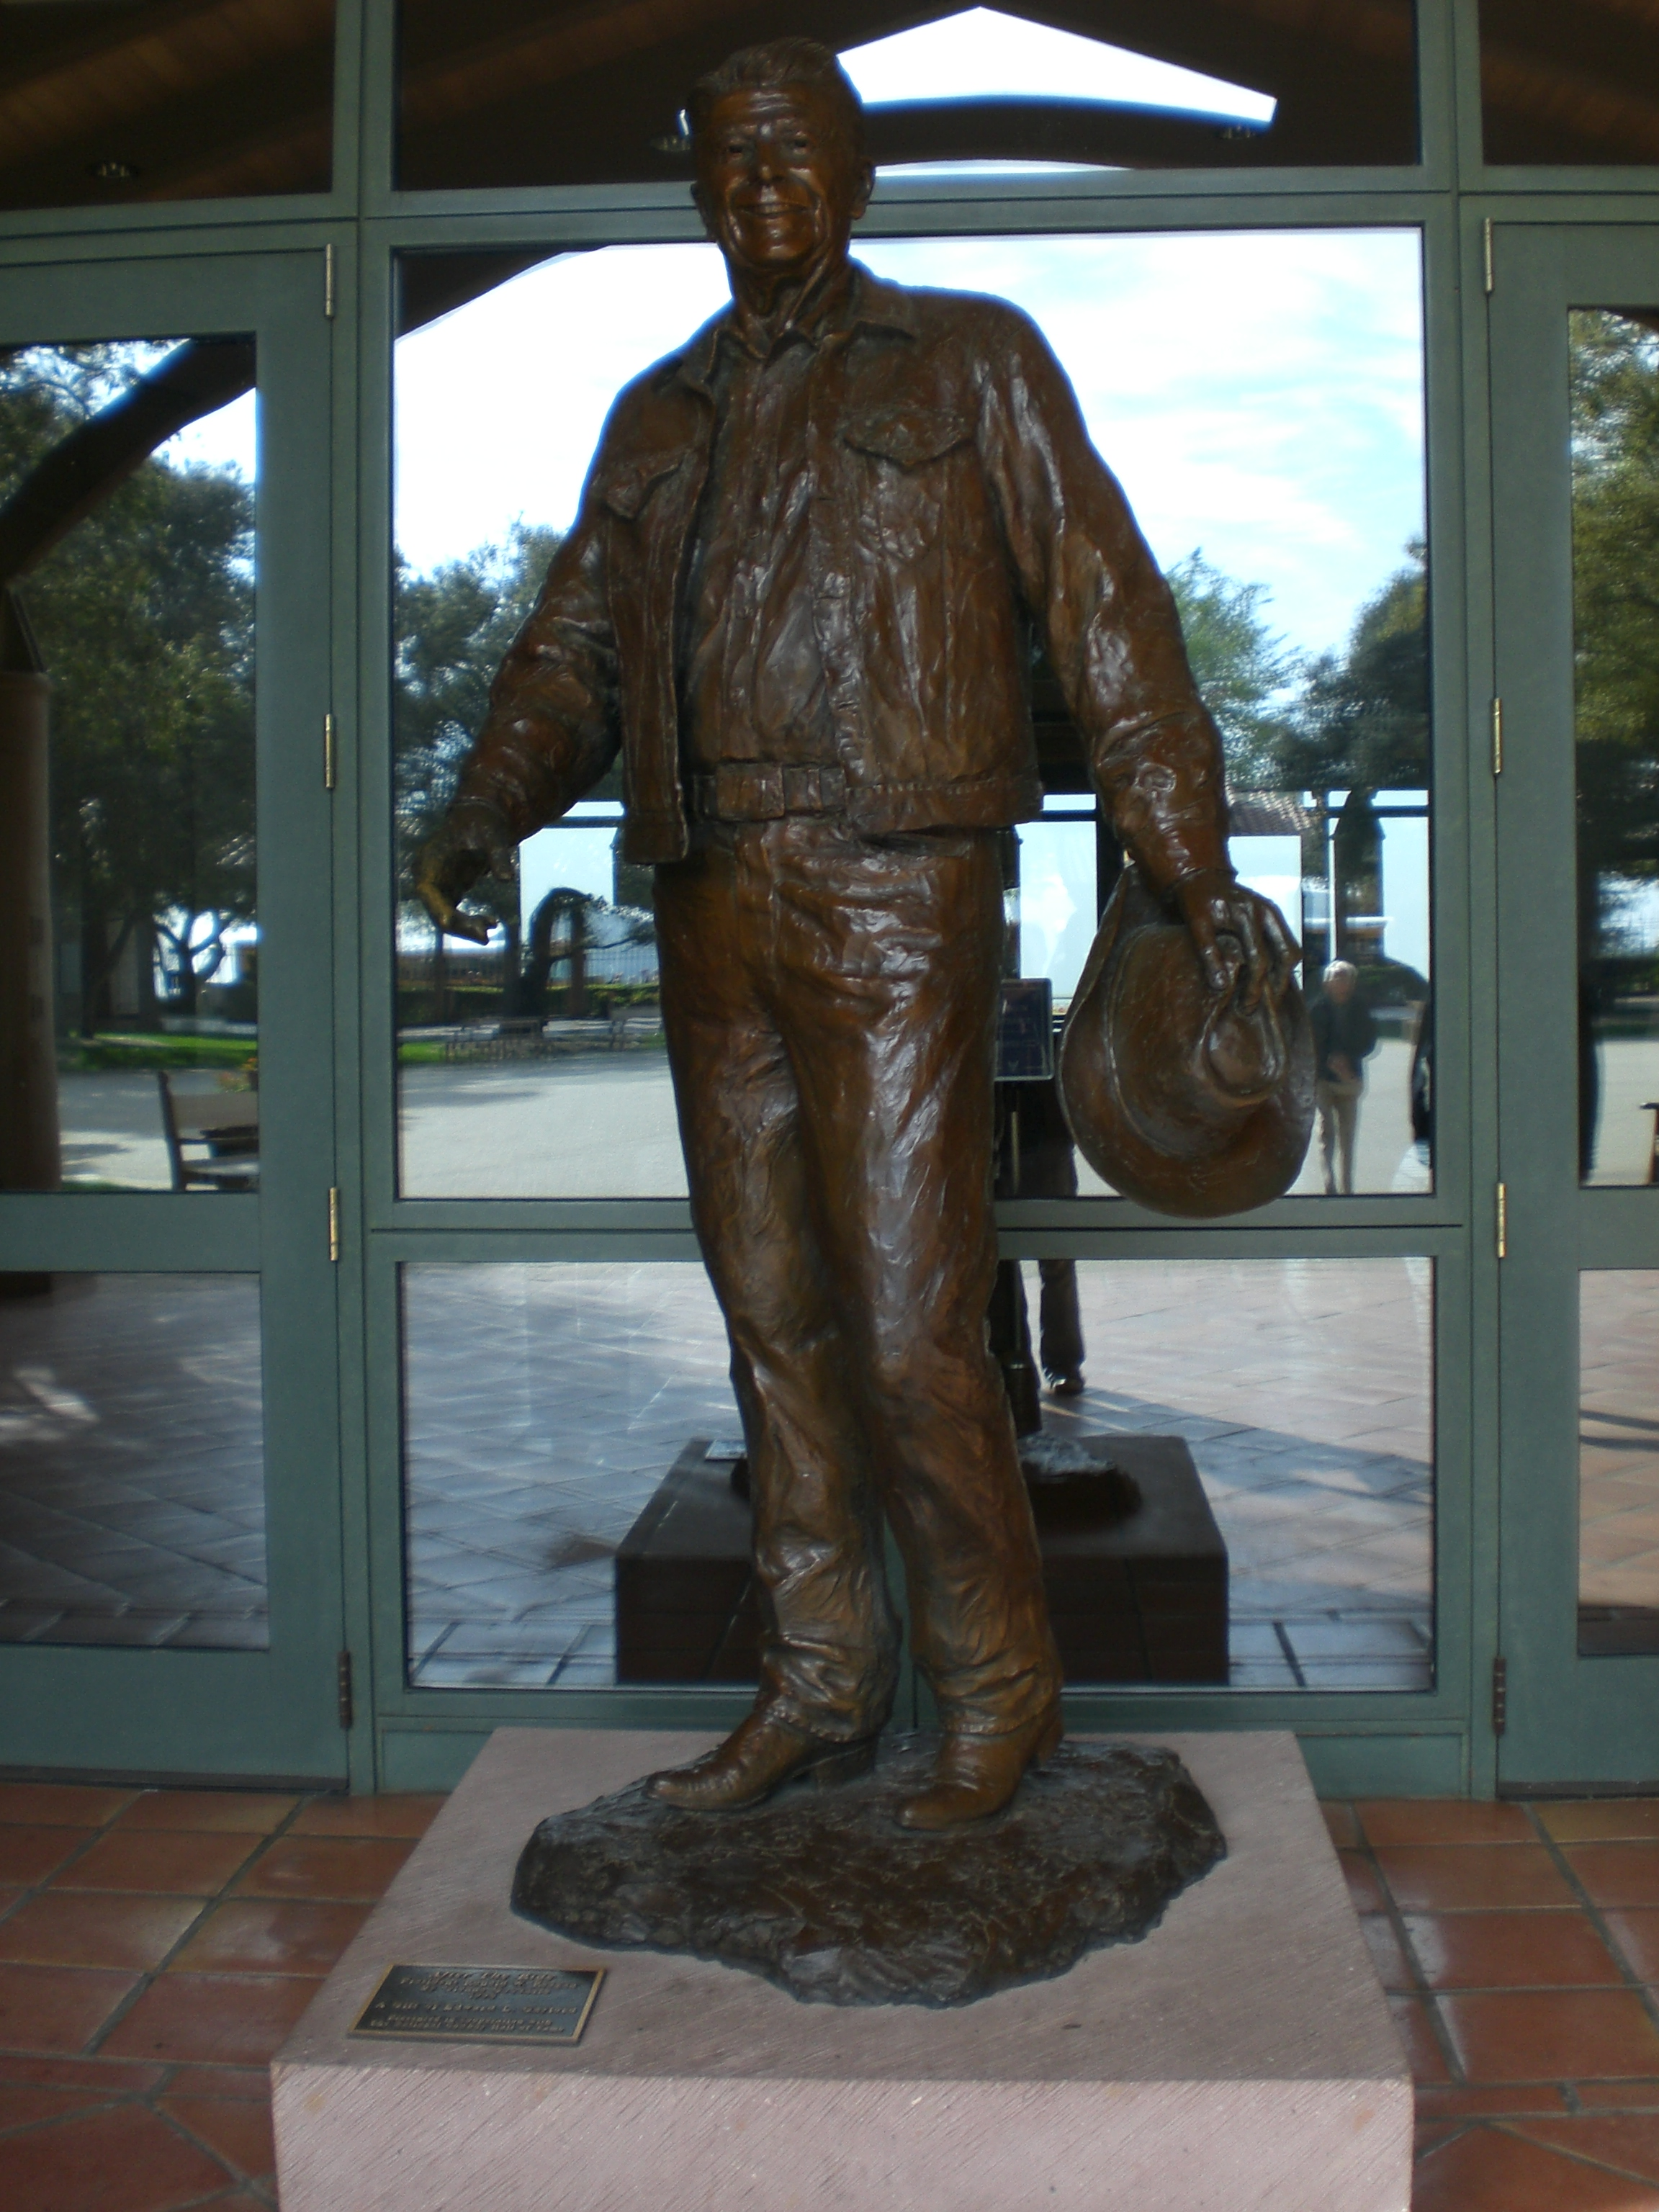 Ronald Reagan statue at the forecourt of the Presidential Library